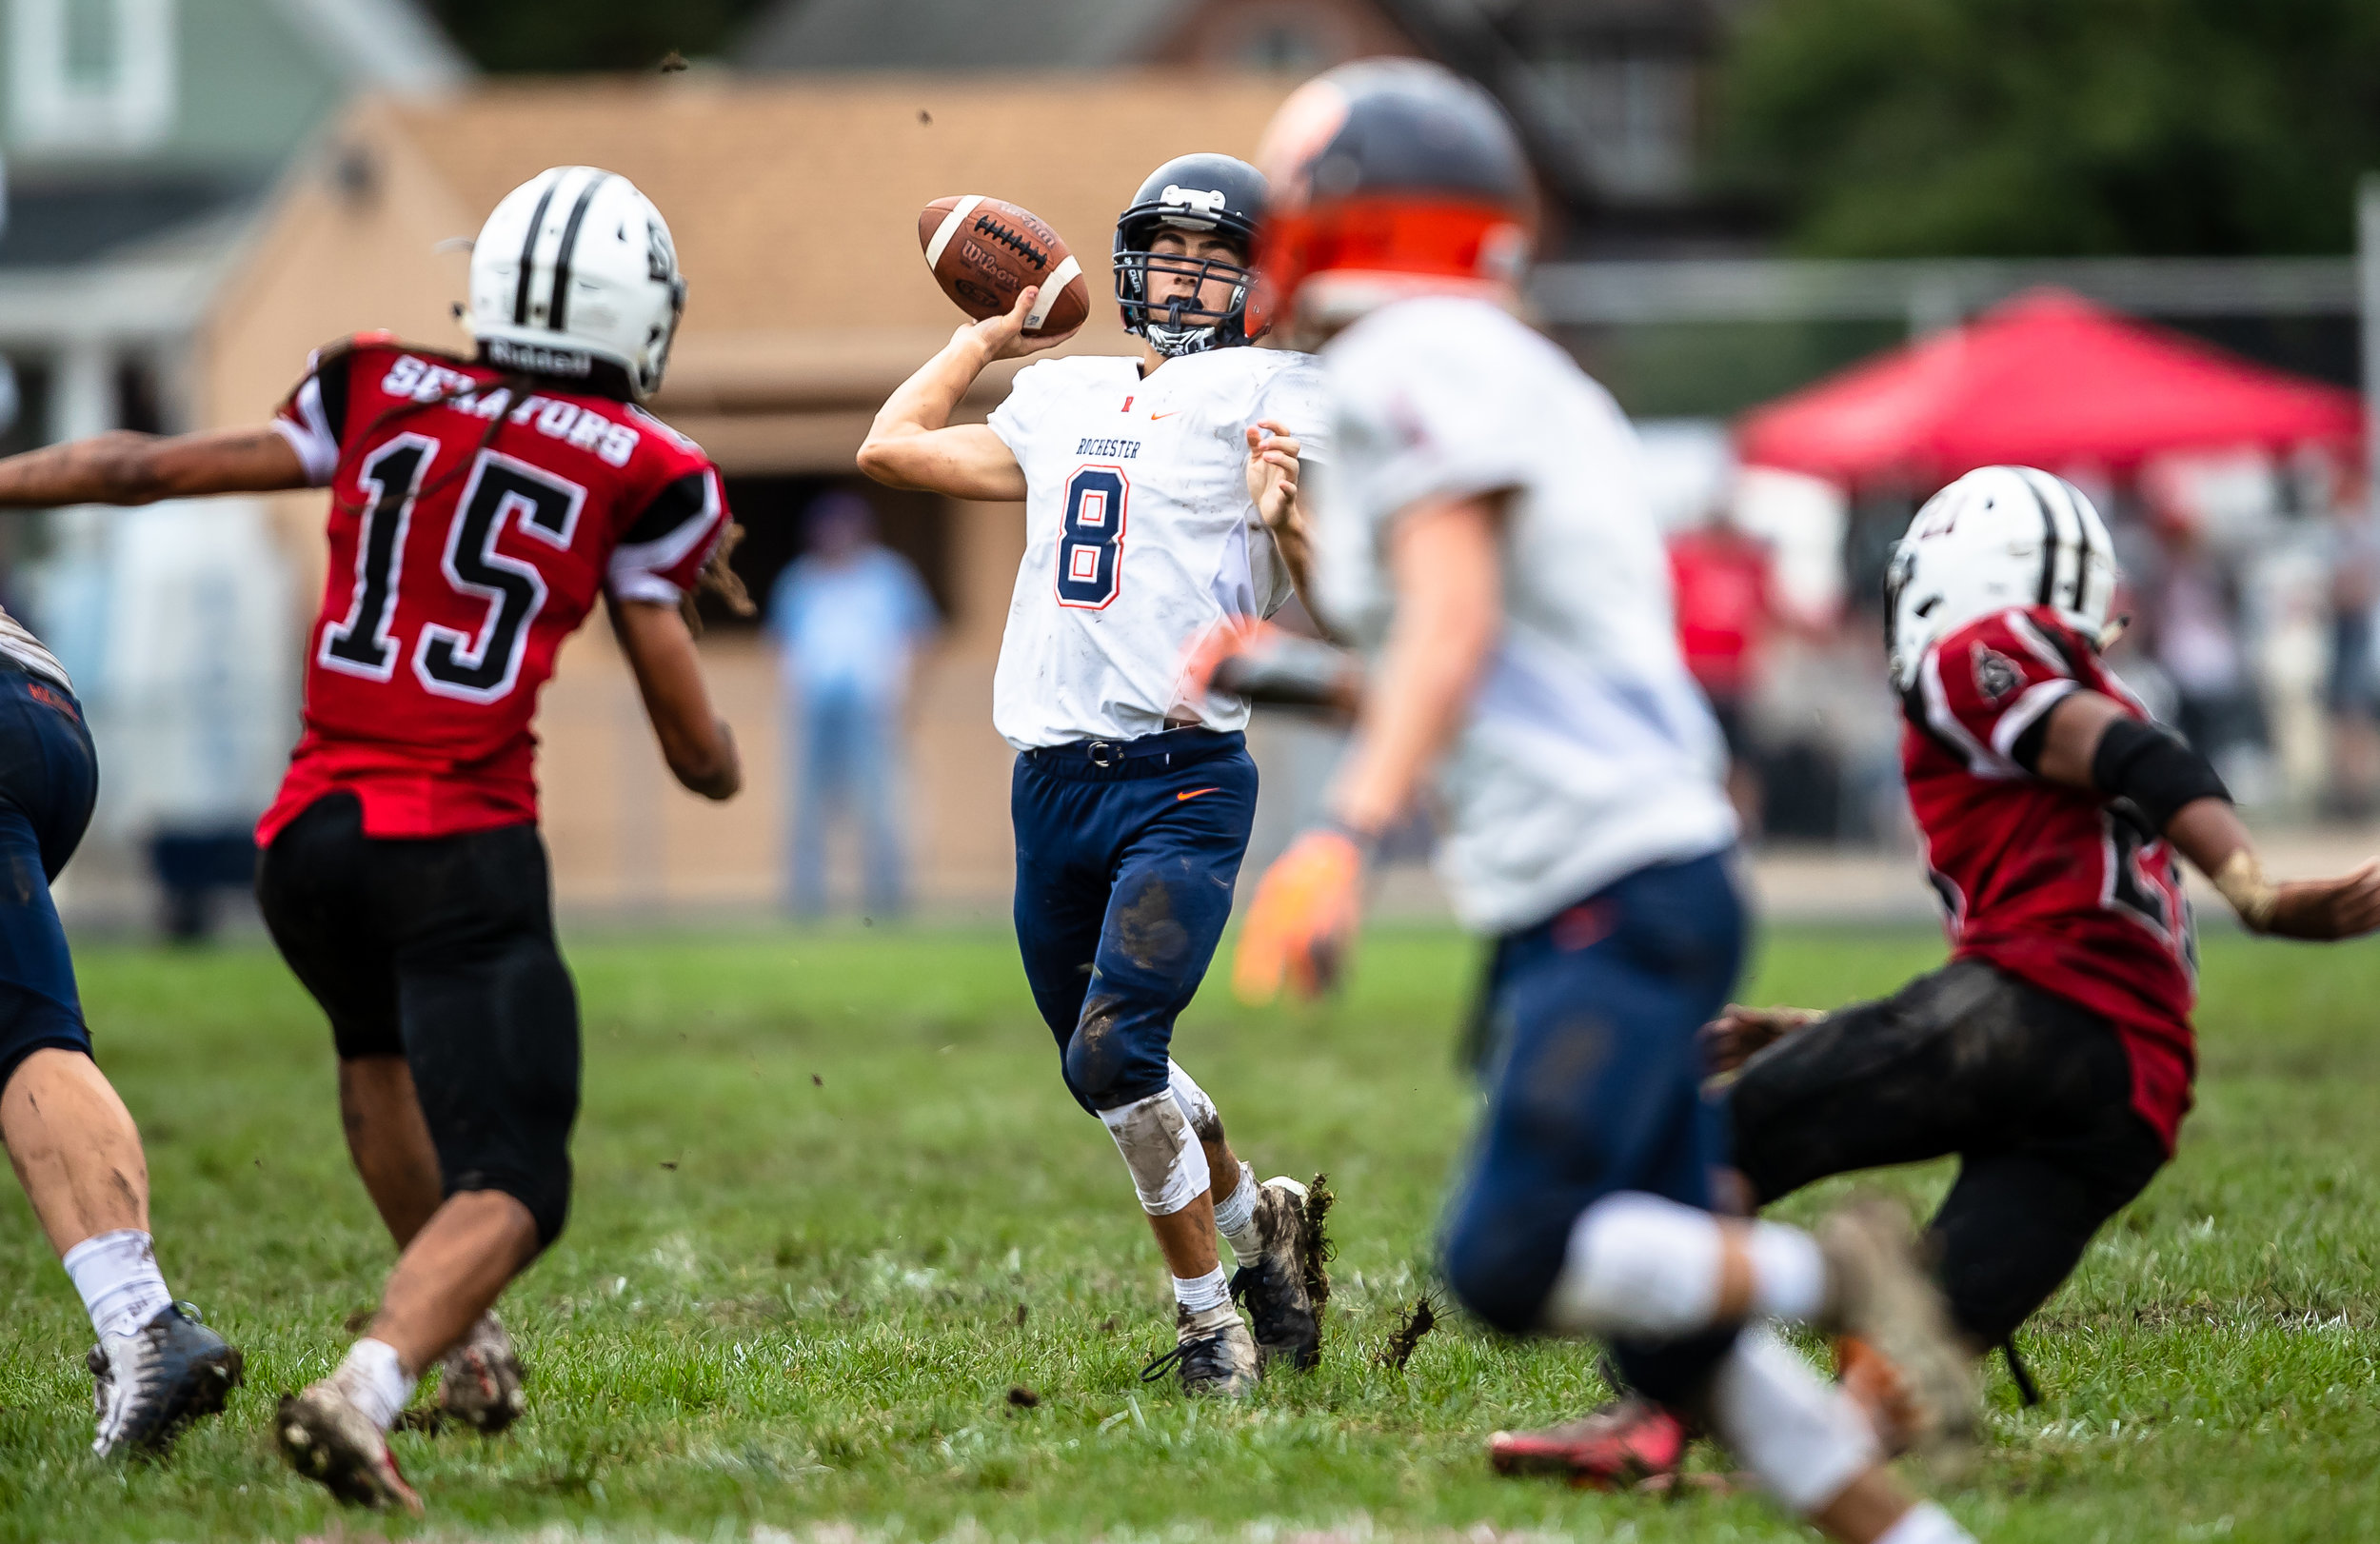 Rochester's Hank Beatty (8) launches a pass against Springfield in the first half at Memorial Stadium, Saturday, Oct. 6, 2018, in Springfield, Ill. [Justin L. Fowler/The State Journal-Register]